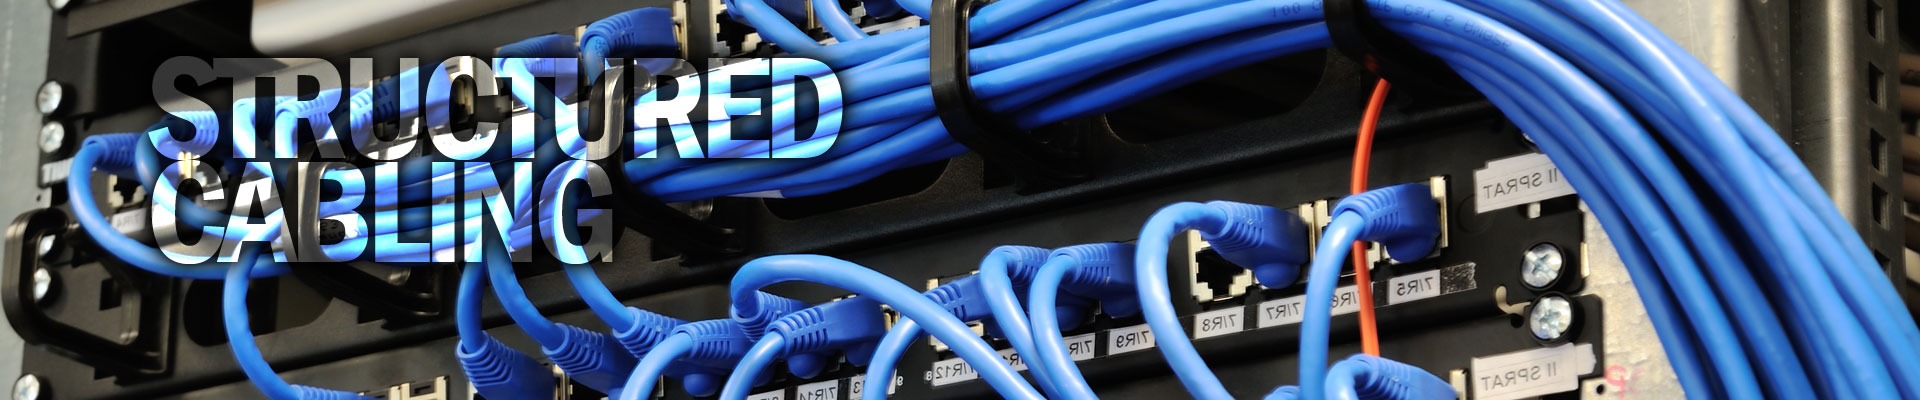 Structured cabling banner image